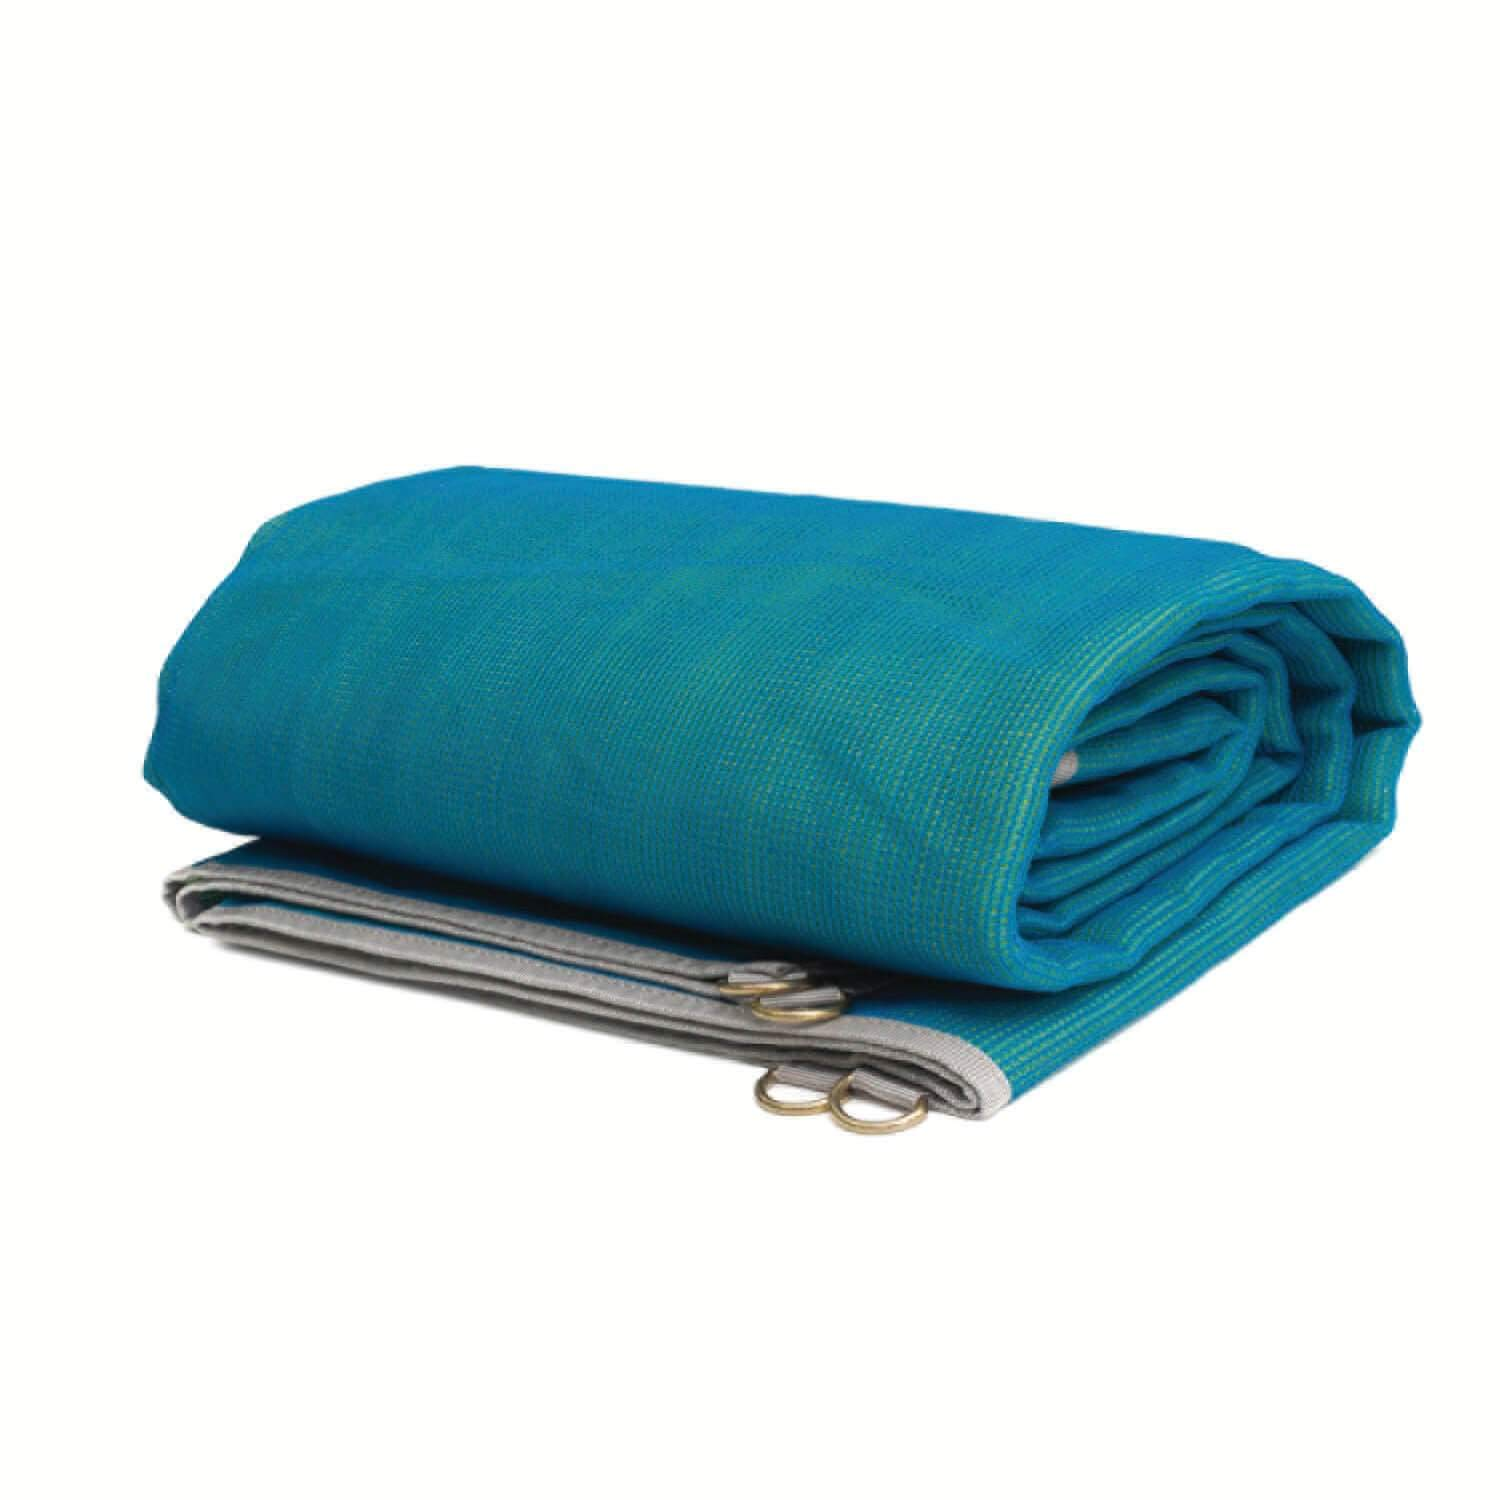 Amazon.com : CGEAR Sand-Free Outdoor Camping Mat The Small size is perfect for the van entry mat – folds up super small.